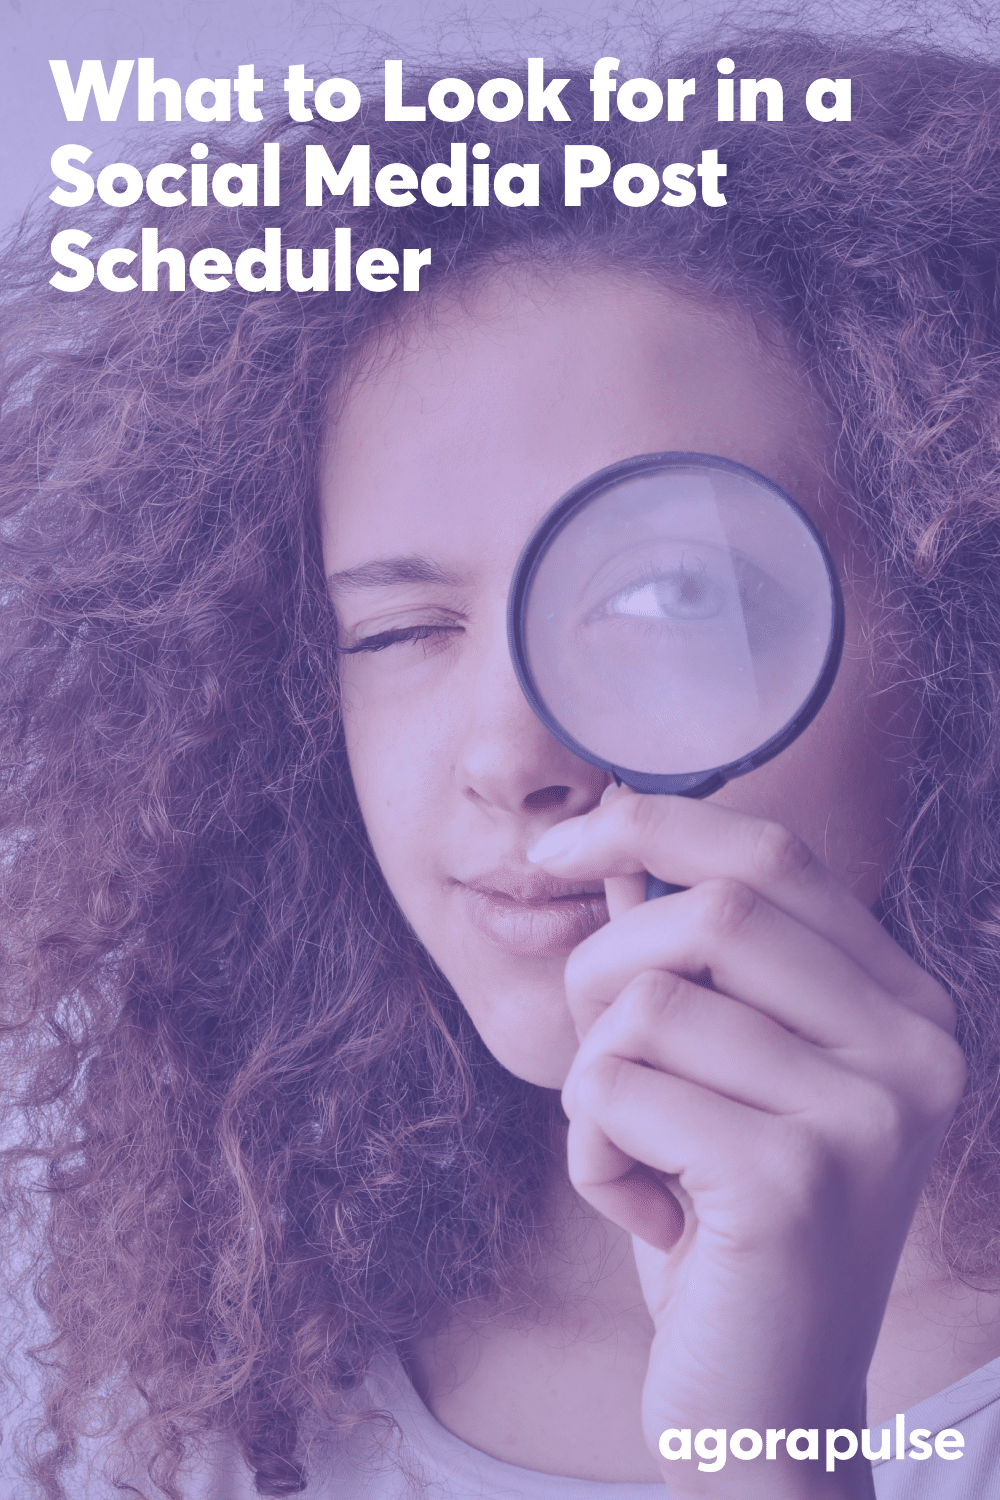 What to Look for in a Social Media Post Scheduler